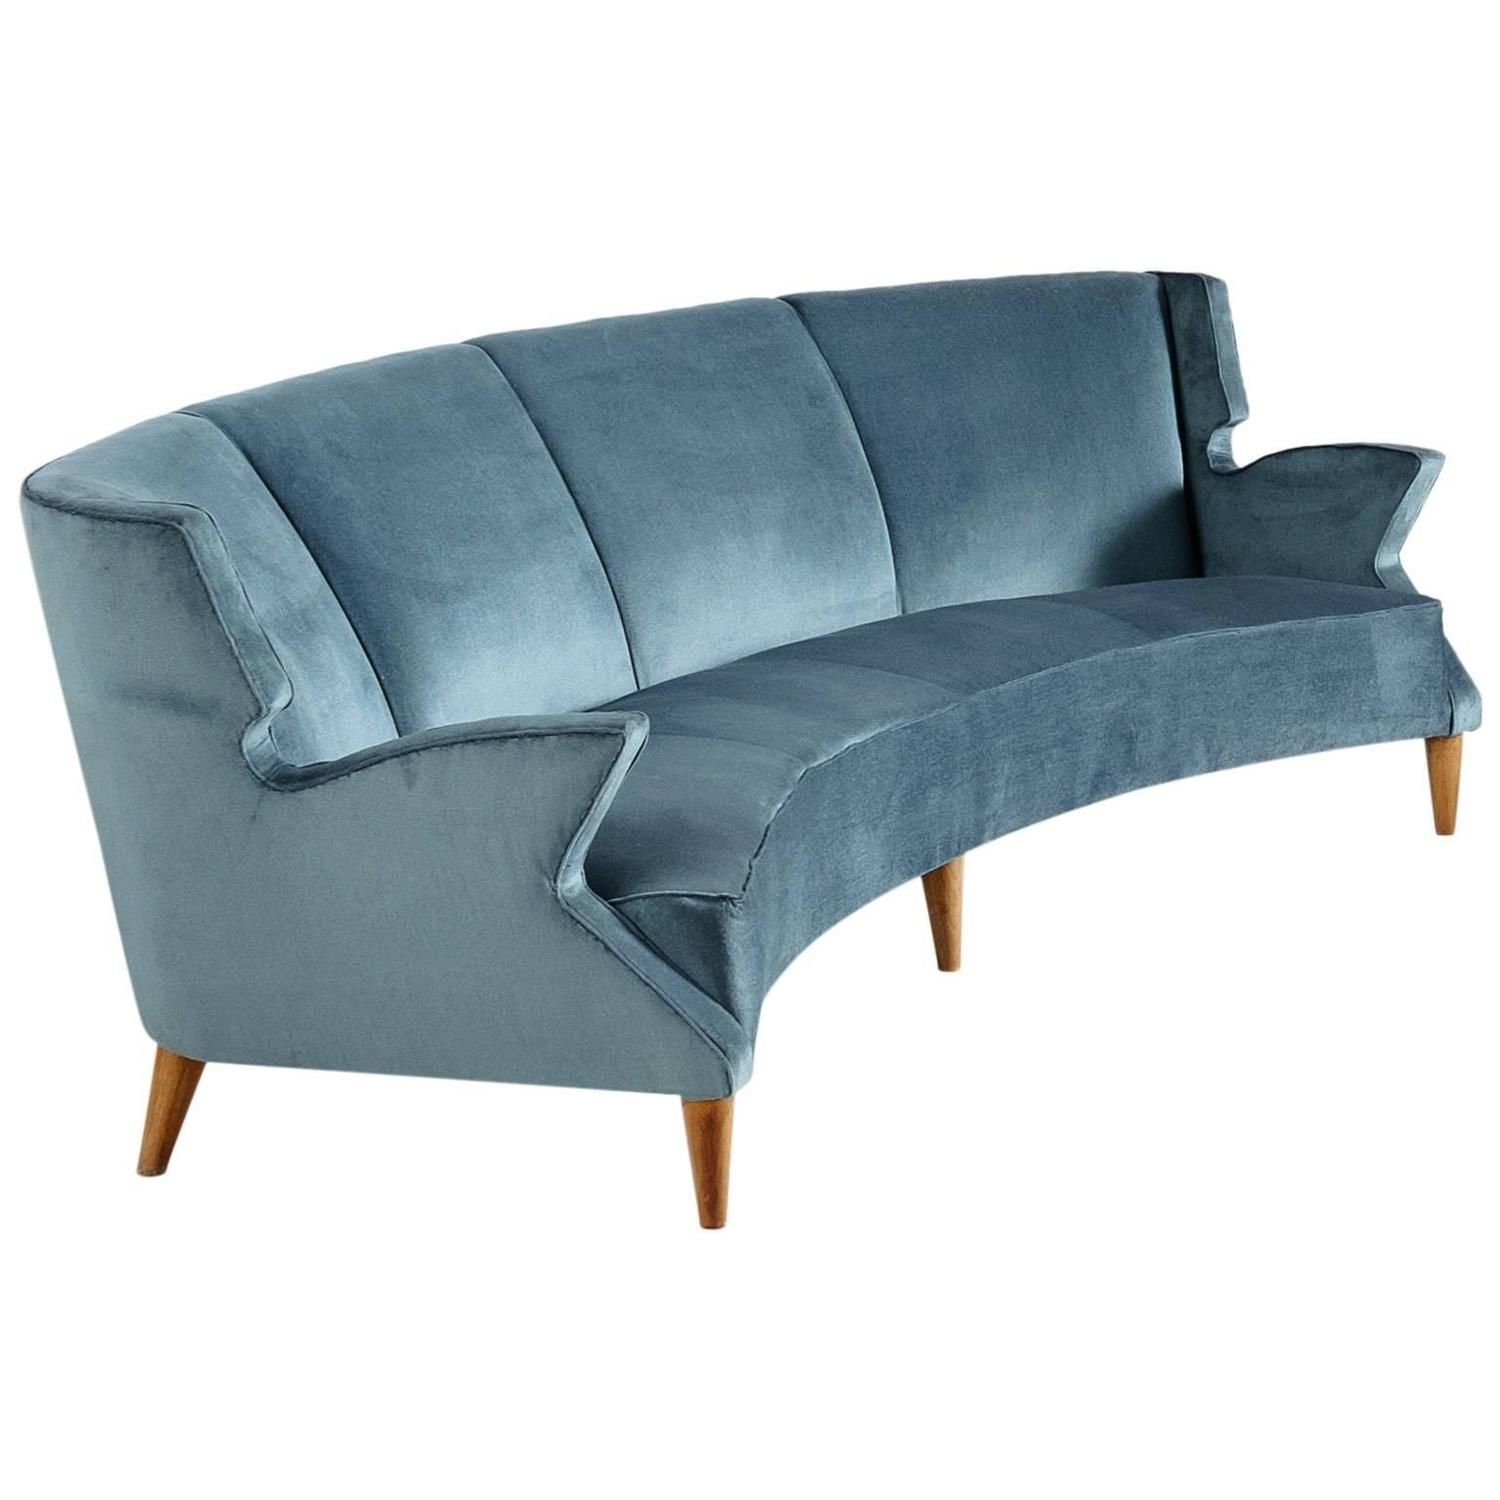 Large Italian Four Seat Curved Sofa Large Italian